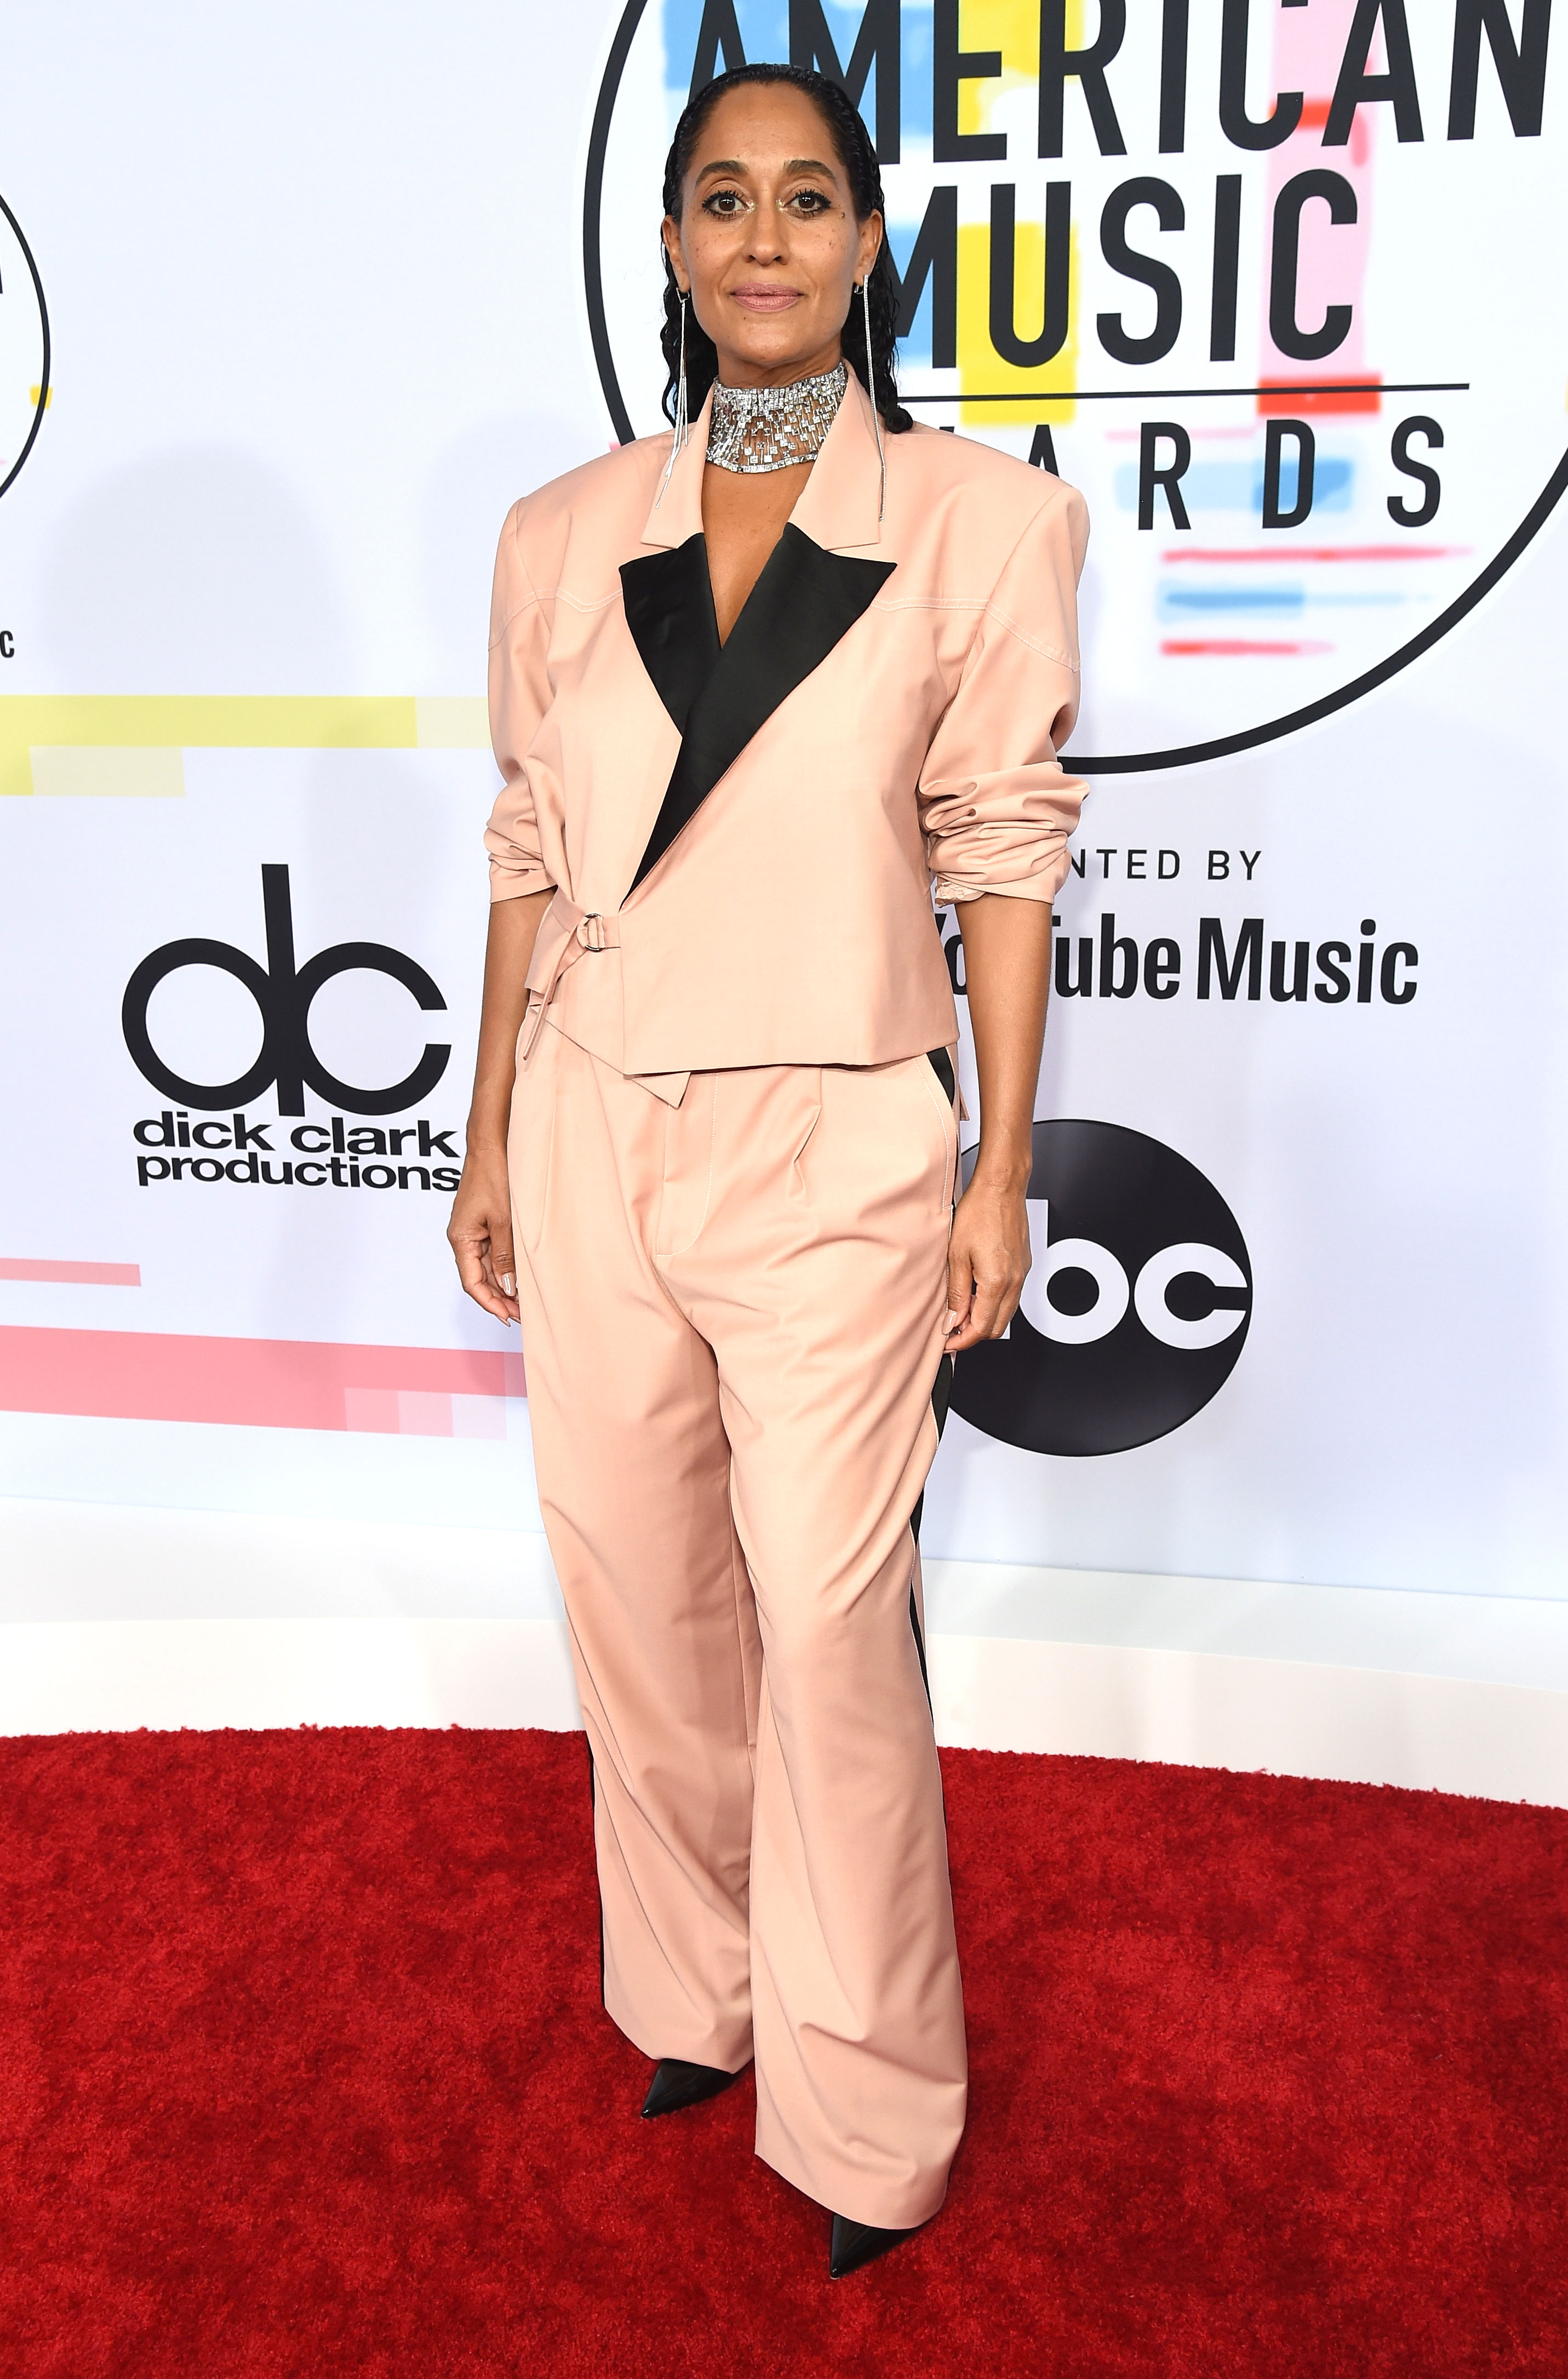 tracee-ellis-ross - Returning as the host of the American Music Awards for the second year in a row, the evening's emcee kicked off her first of 10 (!) outfit changes in a Pyer Moss two-piece, Christian Louboutin pumps, Jacob & Co. necklace and Djula and Mattia Cielo earrings.